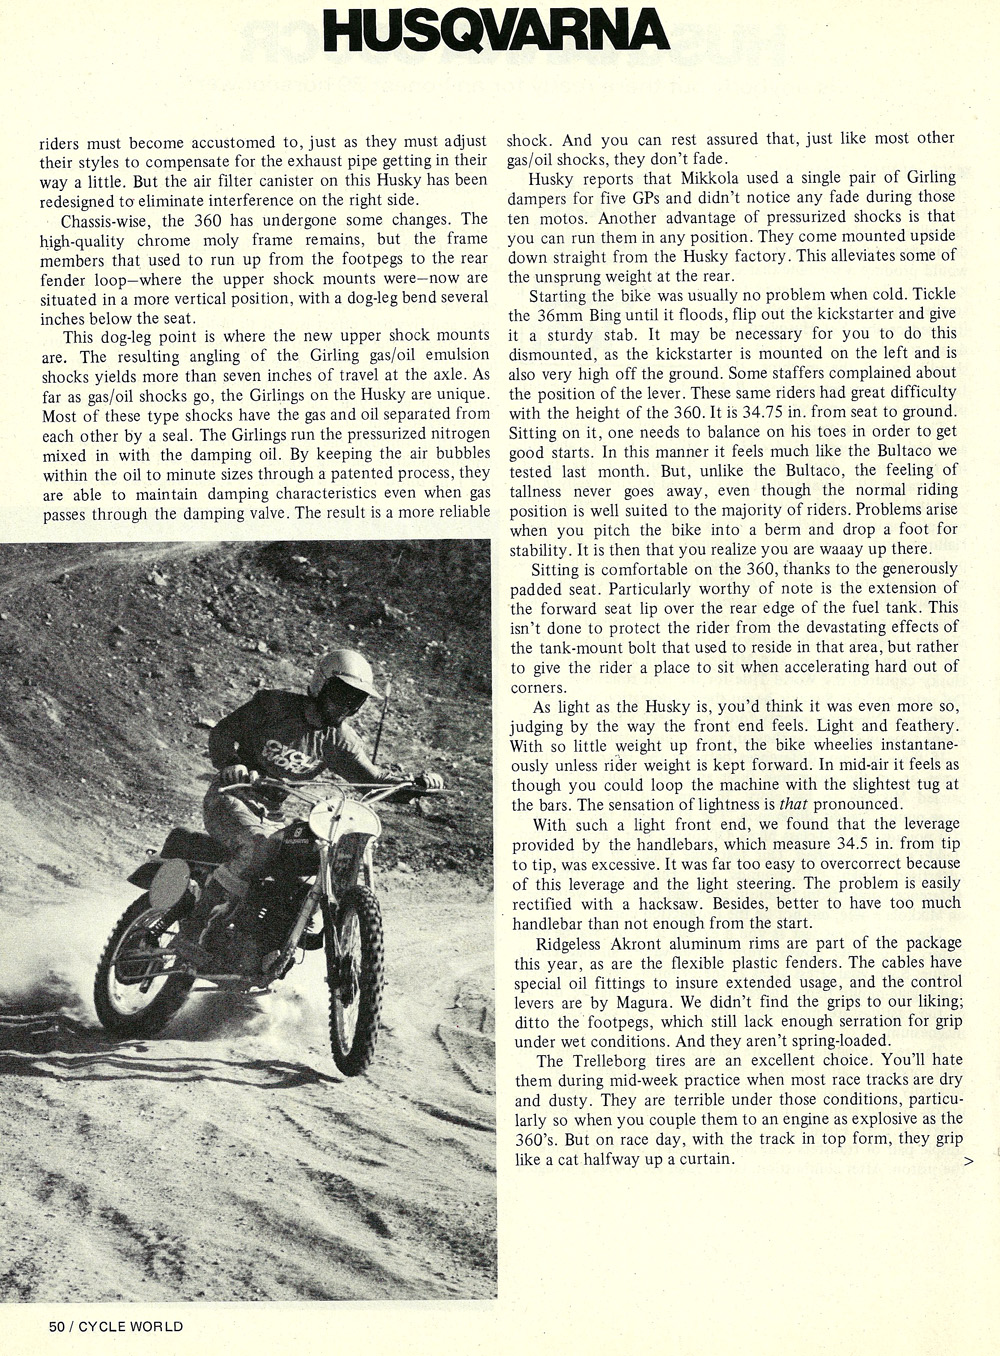 1975 Husqvarna 360CR road test 03.jpg